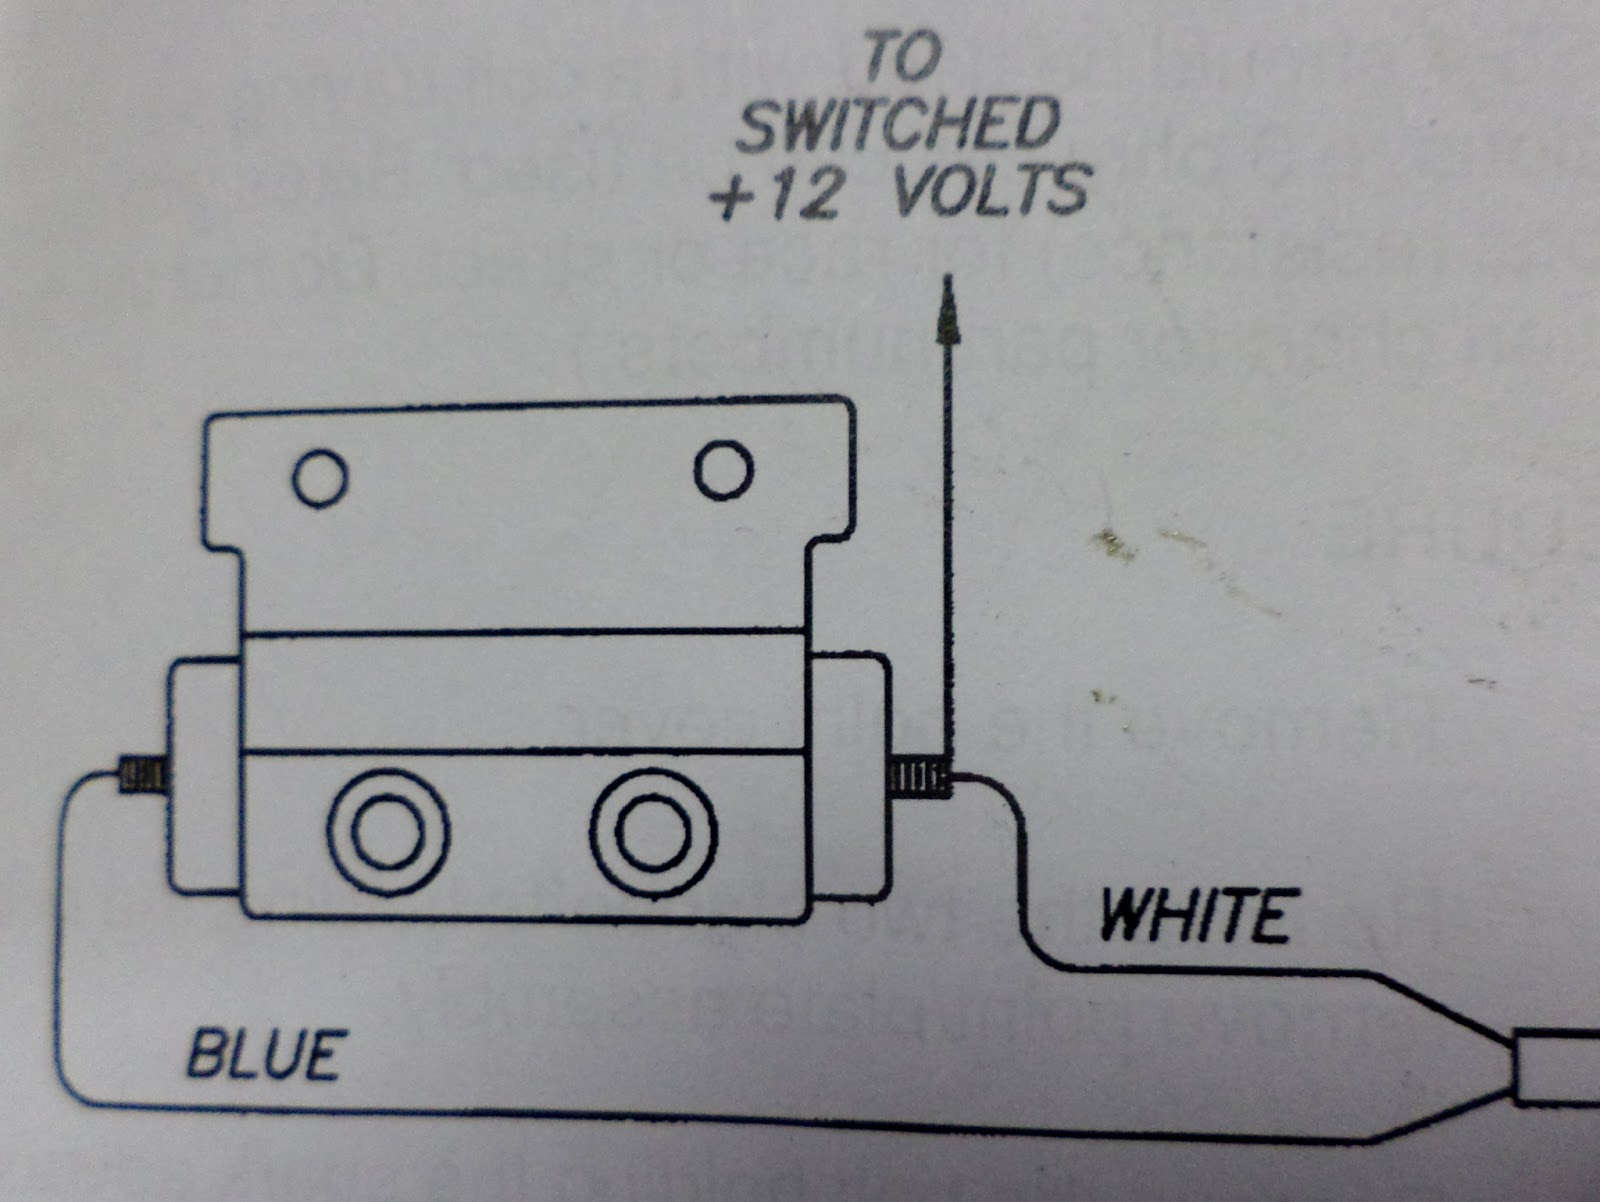 dyna s ignition wiring diagram | brown-office wiring diagram meta |  brown-office.perunmarepulito.it  perunmarepulito.it